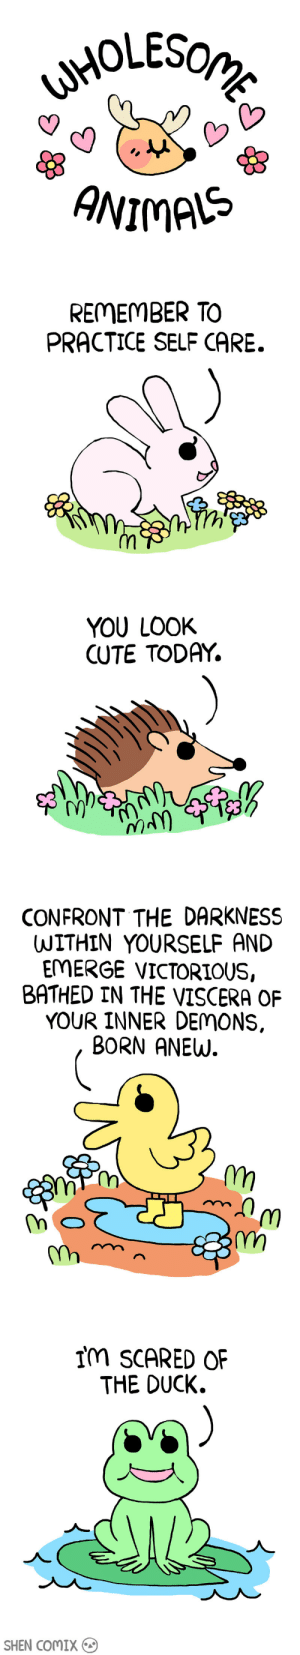 Cute, Duck, and Today: ANIMAS   REMEMBER TO  PRACTICE SELF CARE.   YOU LOOK  CUTE TODAY.  N)   CONFRONT THE DARKNESS  WITHIN YOURSELF AND  EMERGE VICTORIOUS,  BATHED IN THE VISCERA OF  YOUR INNER DEMONS.  BORN ANEW  Tm   Im SCARED OF  THE DUCK.  SHEN COMIX